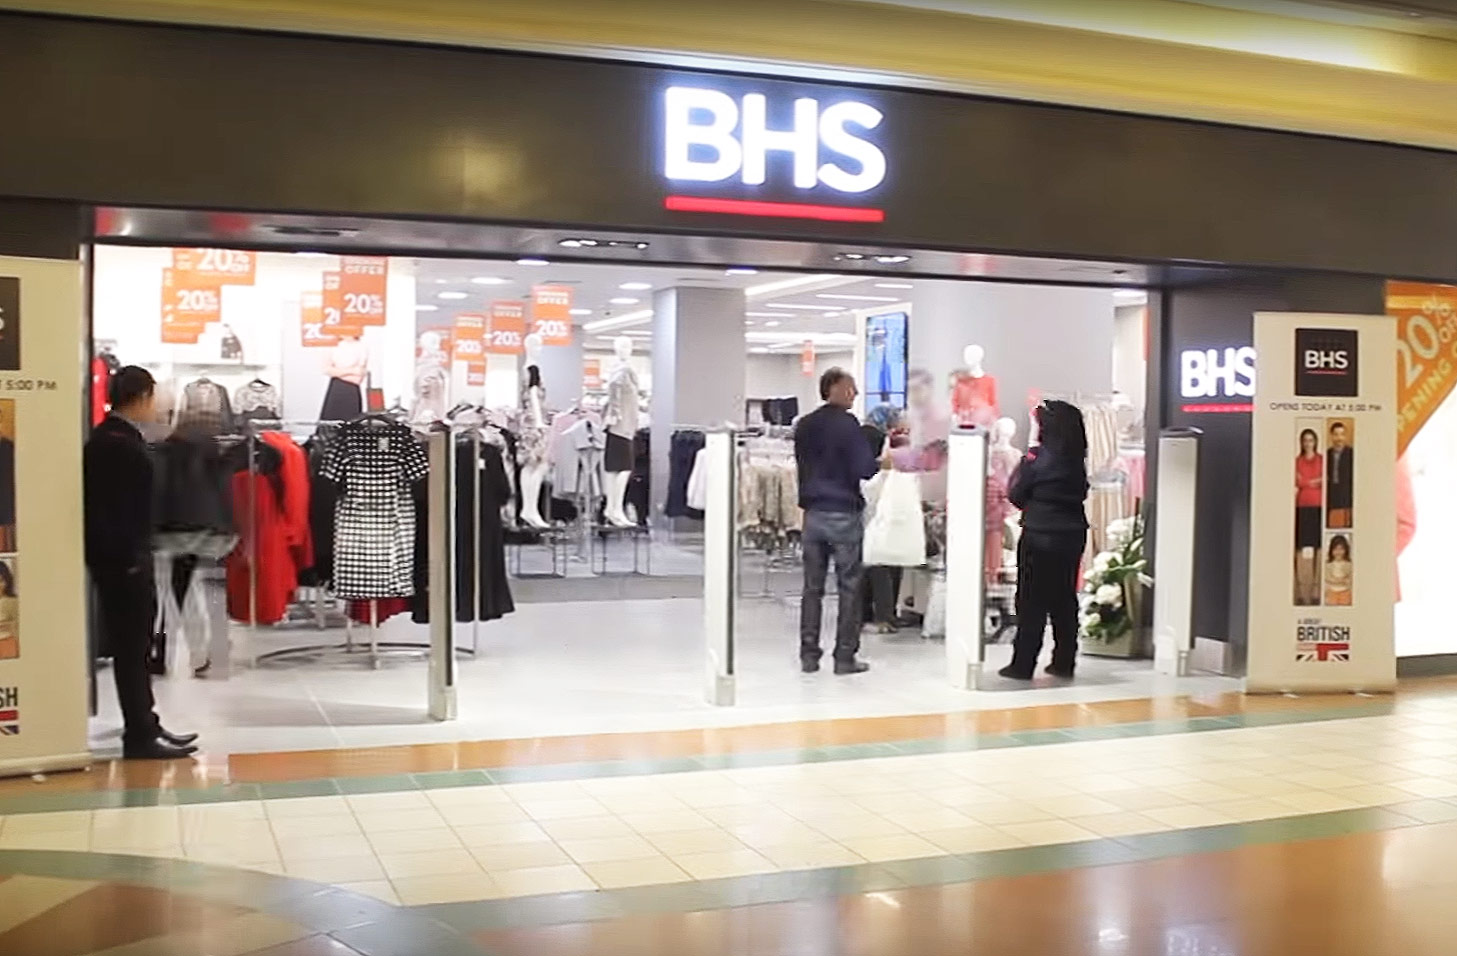 BHS, The Former UK High-Street Department Store Returns As Online Retailer